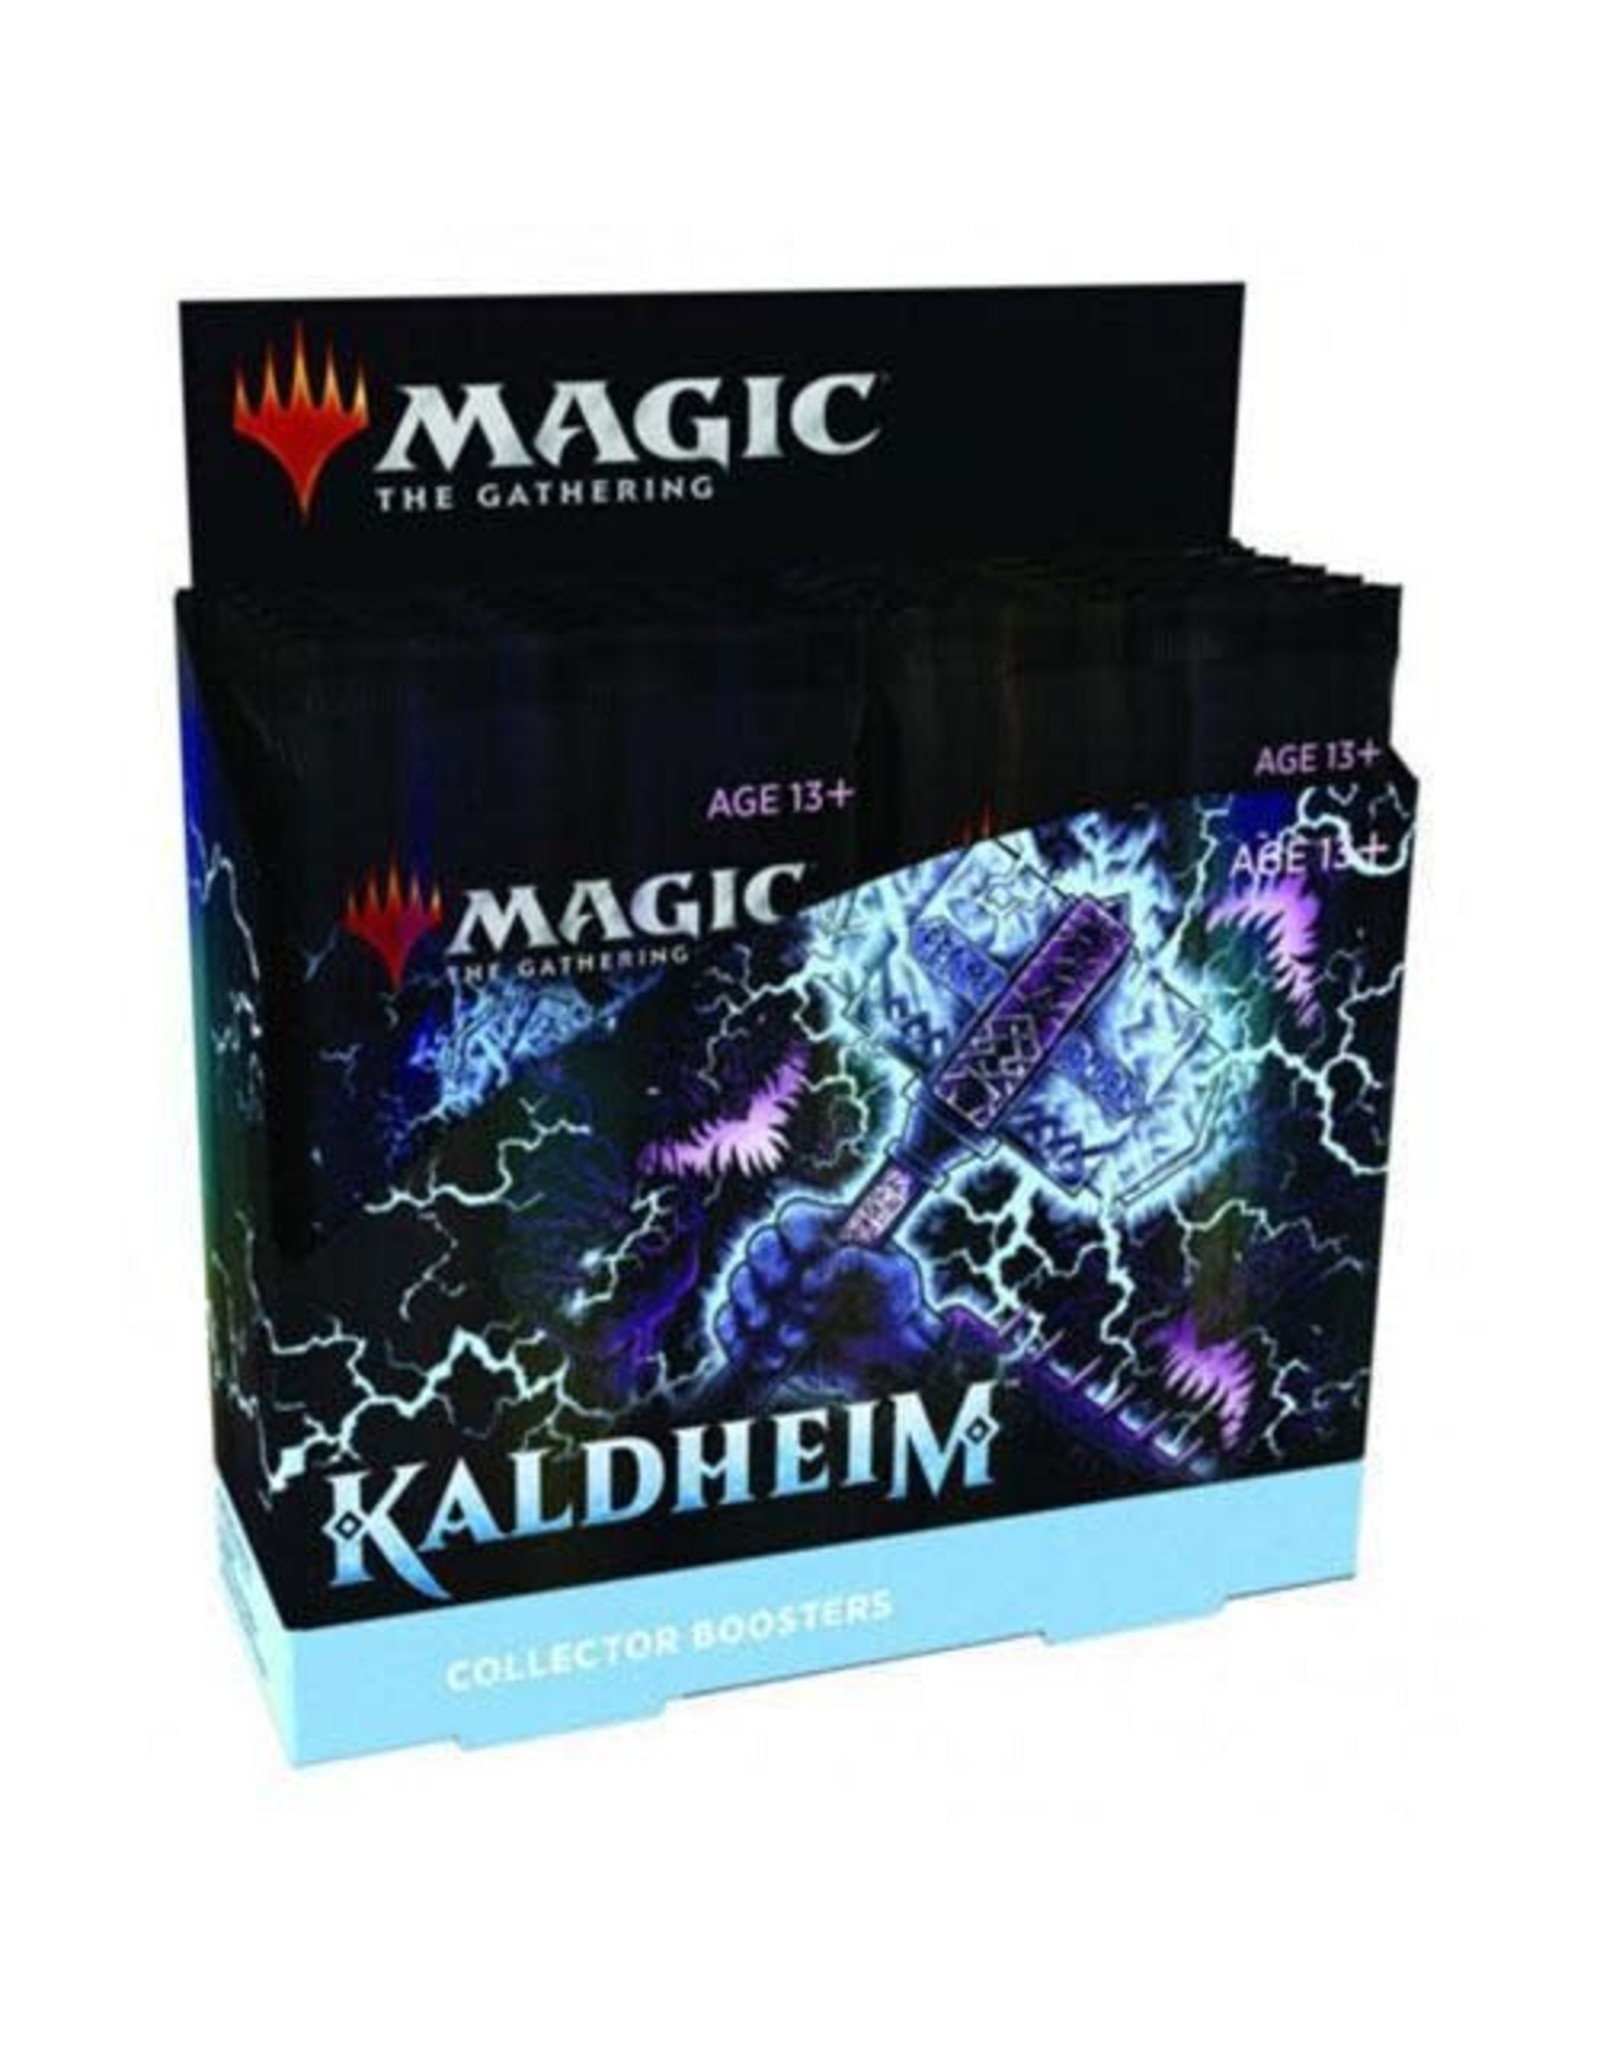 Wizards of the Coast Magic The Gathering: Kaldheim Collector Booster Box